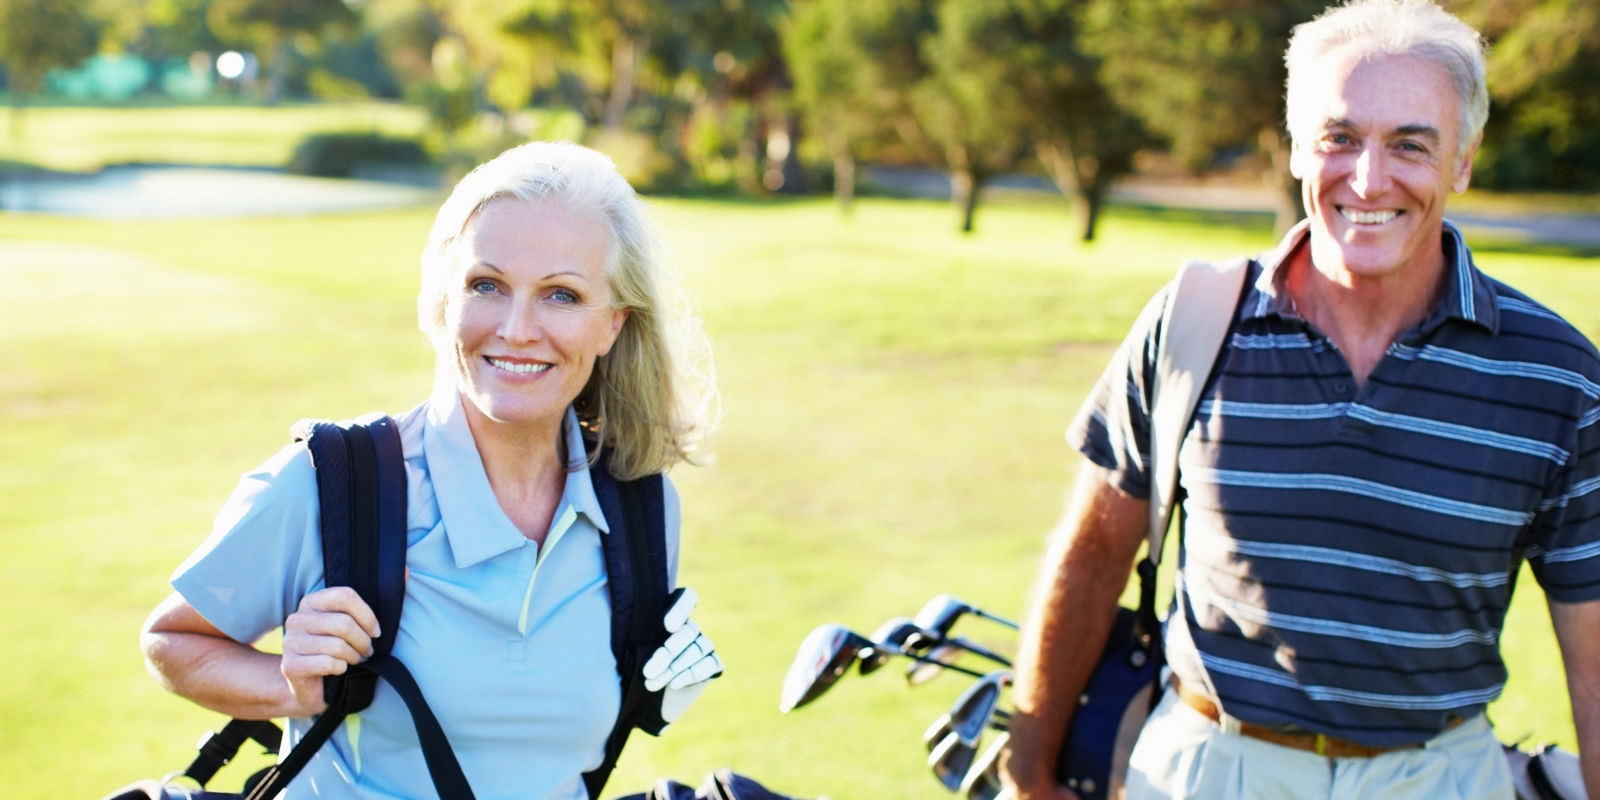 These Activities In Middle Age Could Help Ward Off